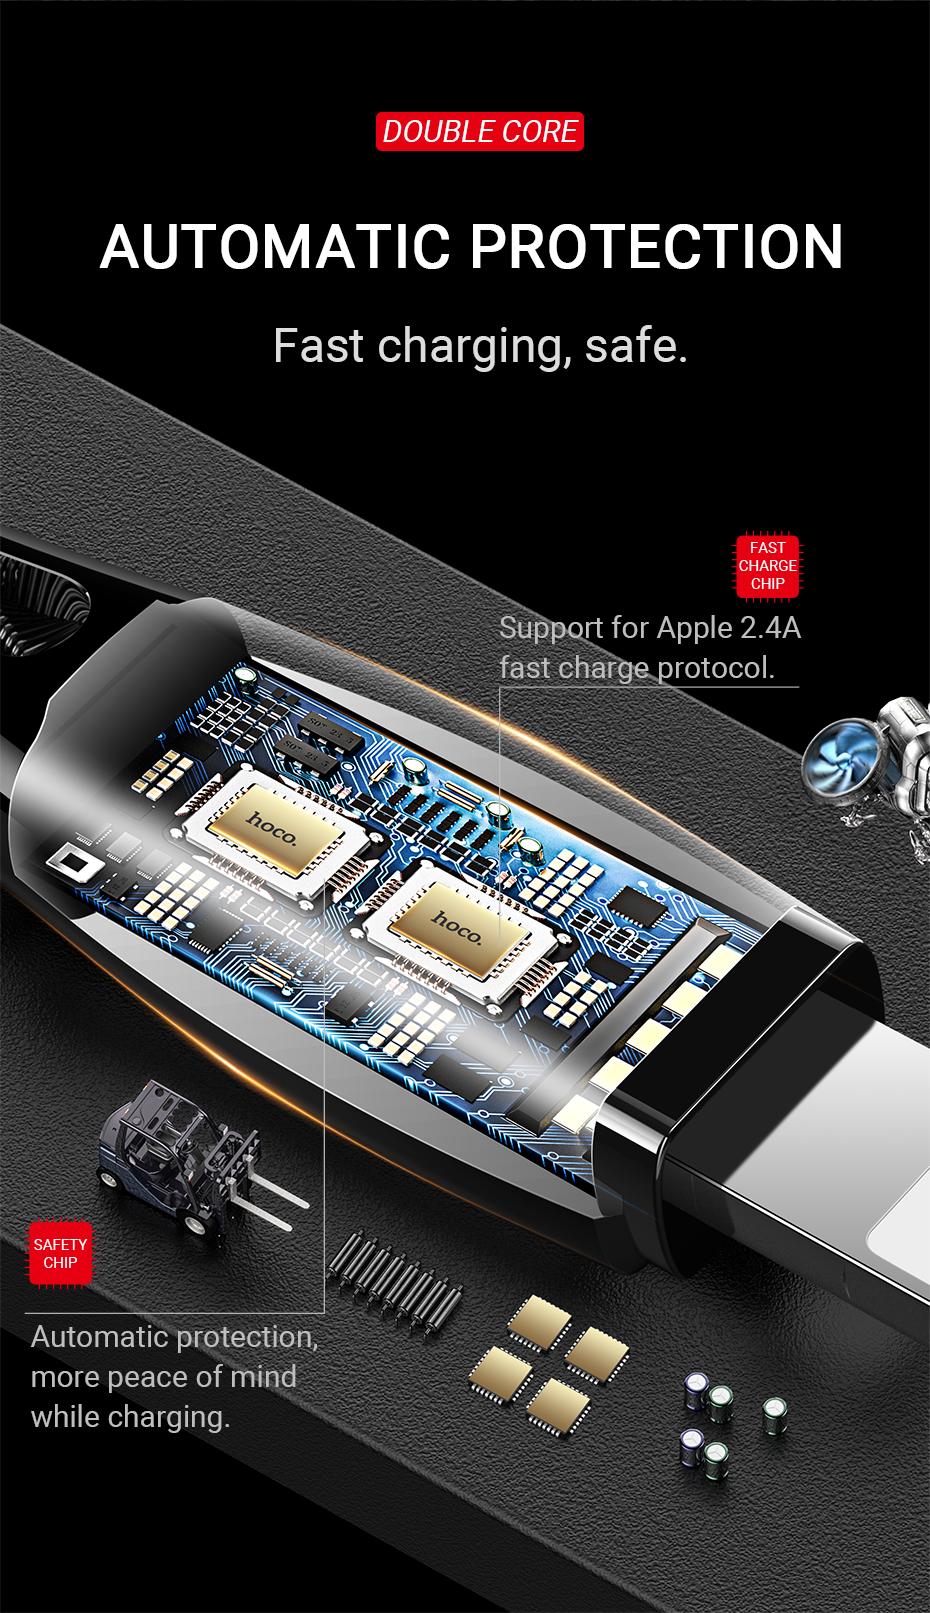 hoco-u56-metal-armor-charging-data-cable-for-lightning-protection